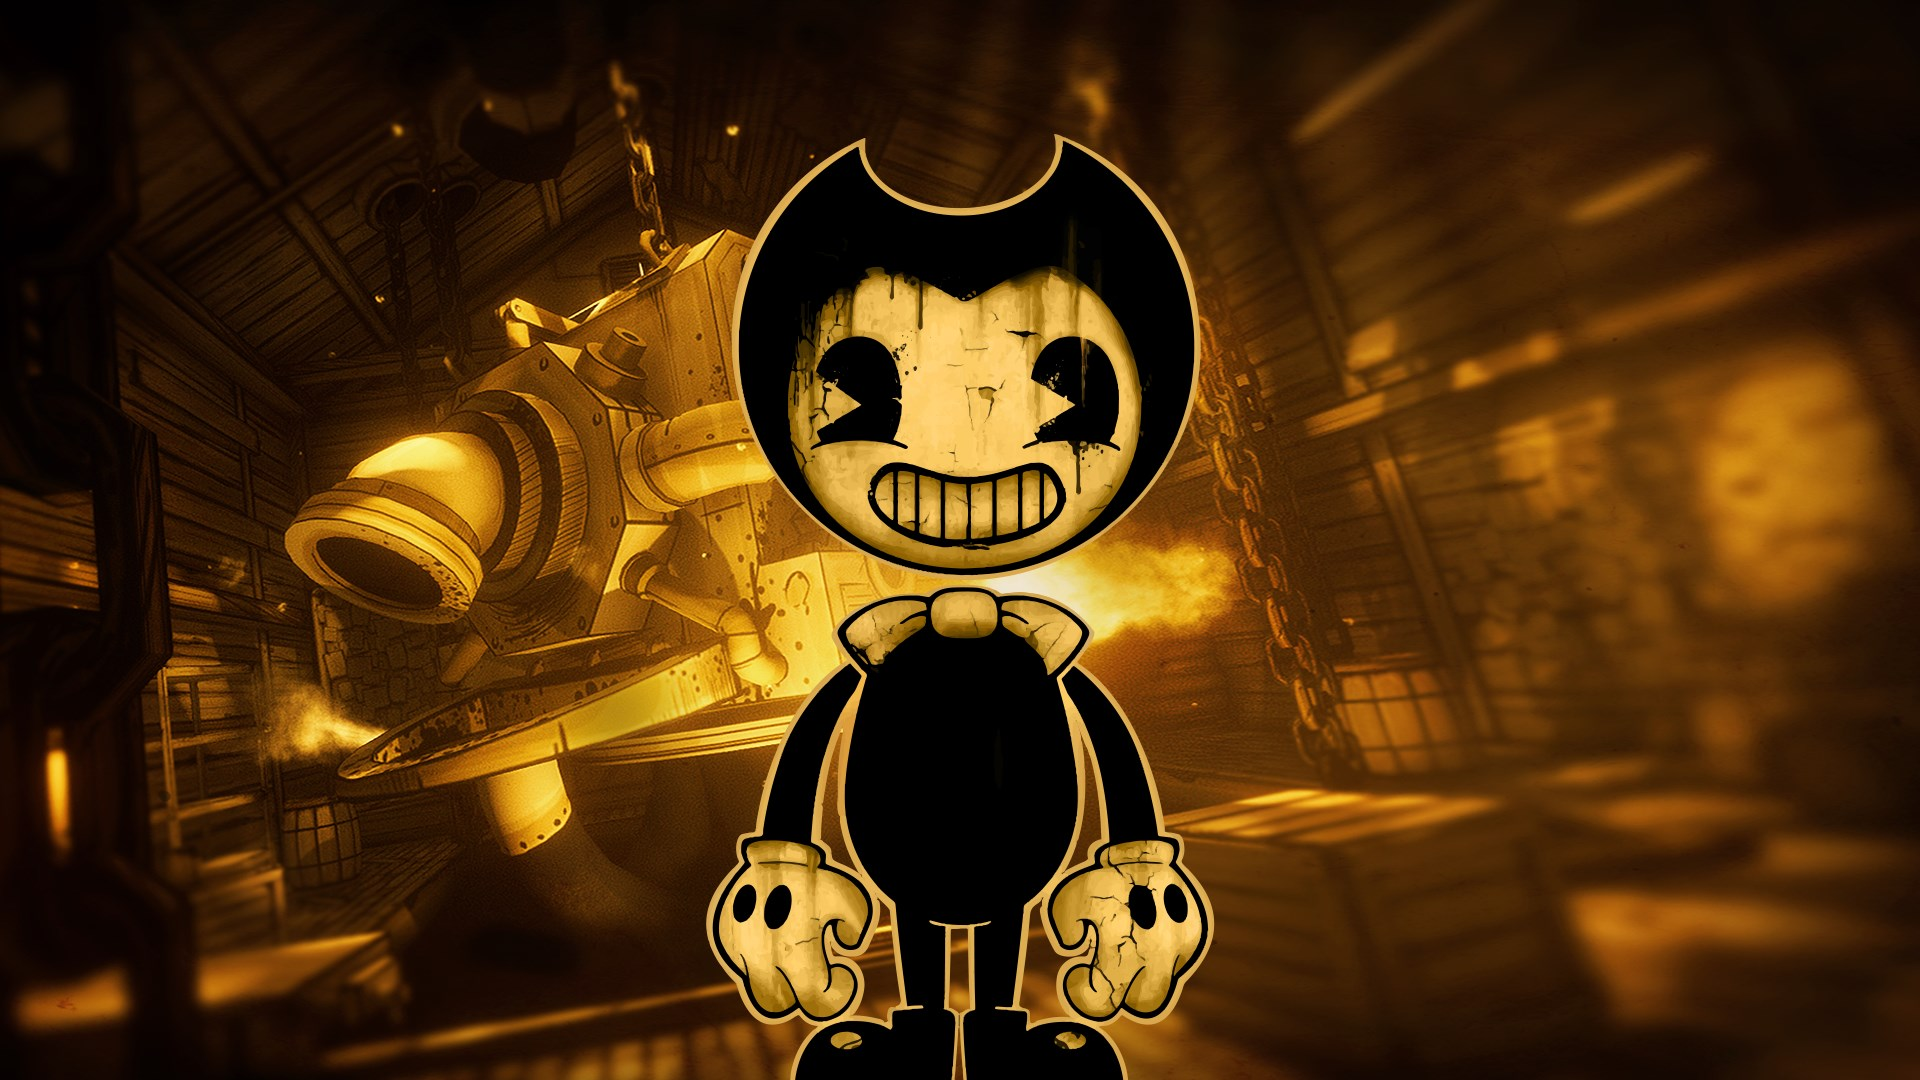 bendy and the ink machine song 10 hours